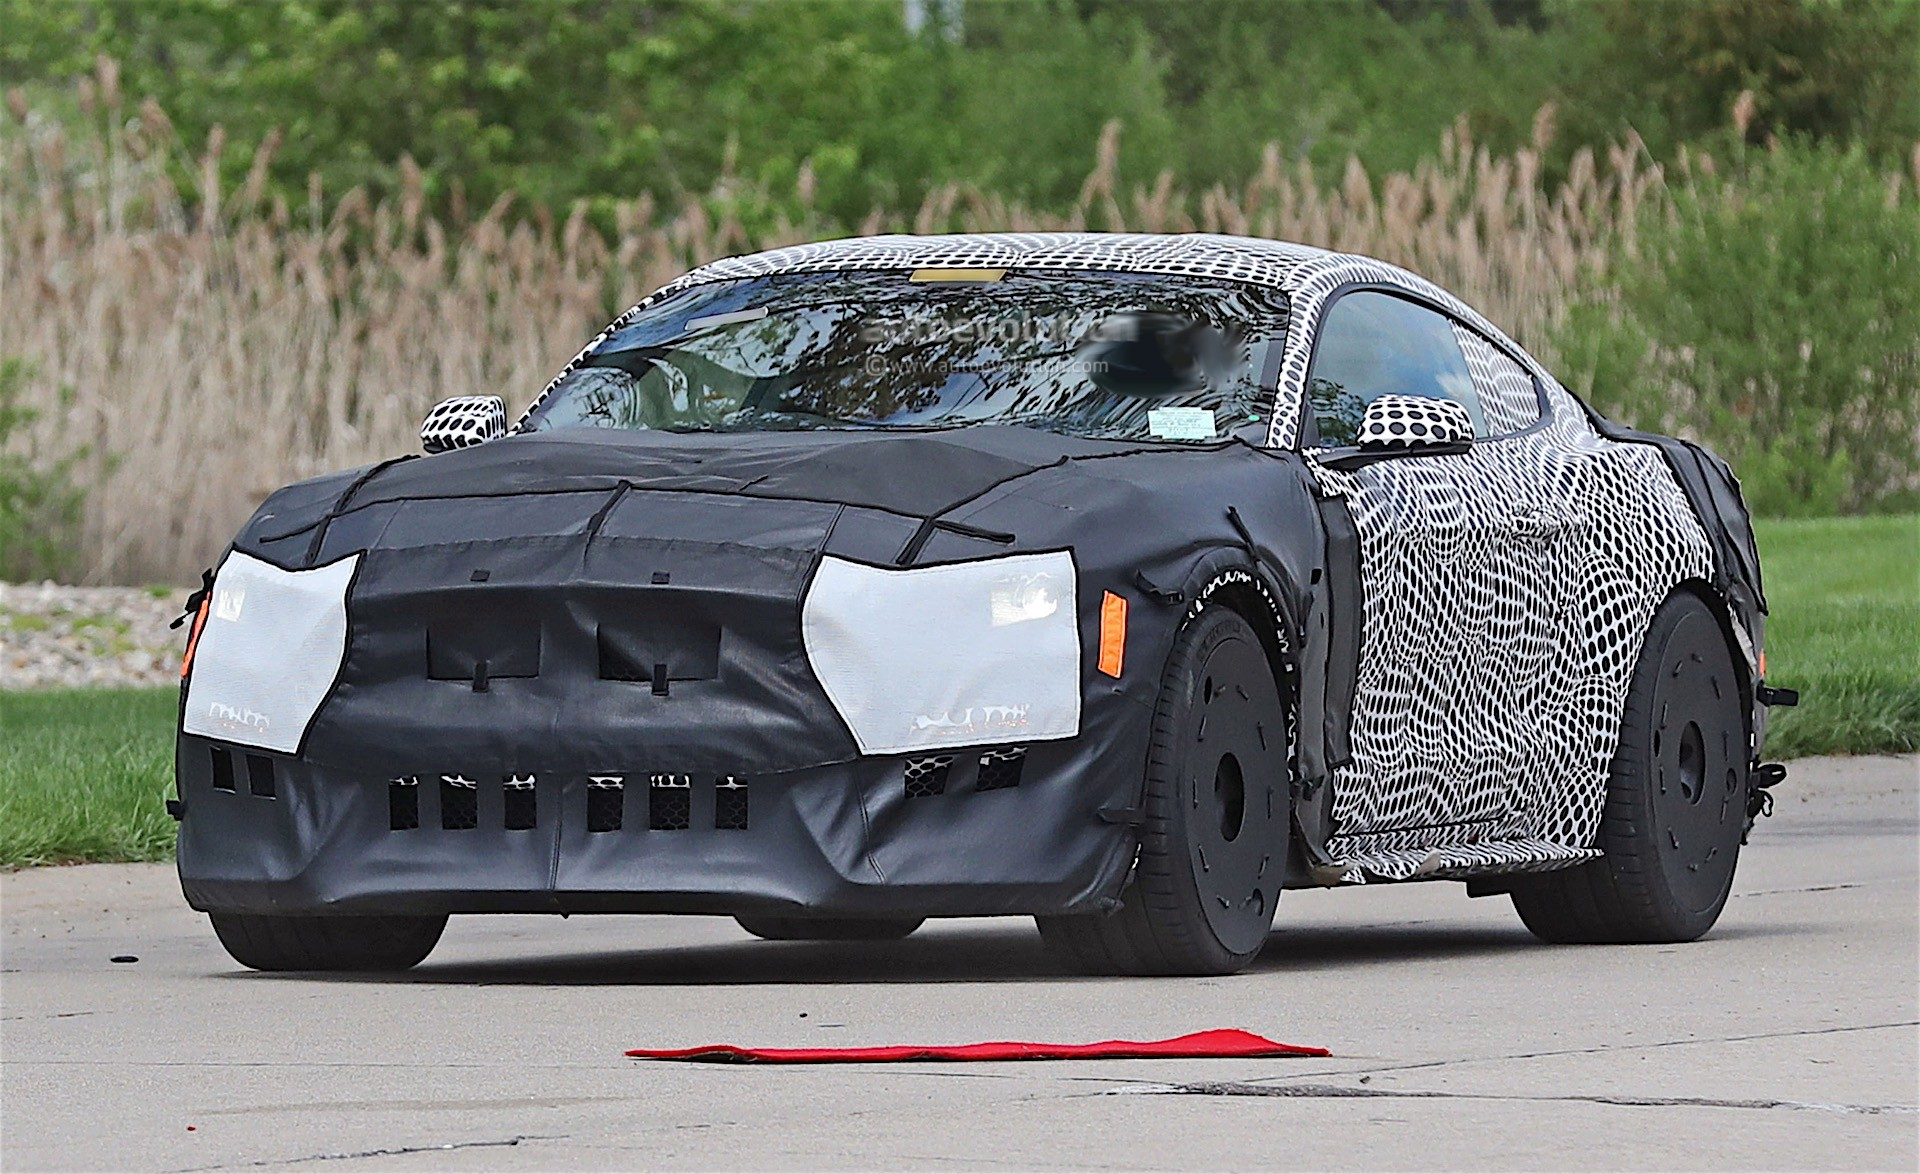 2020 Ford Mustang Shelby GT500 Supercharged 5.2L Predator V8 Confirmed in Leak - autoevolution